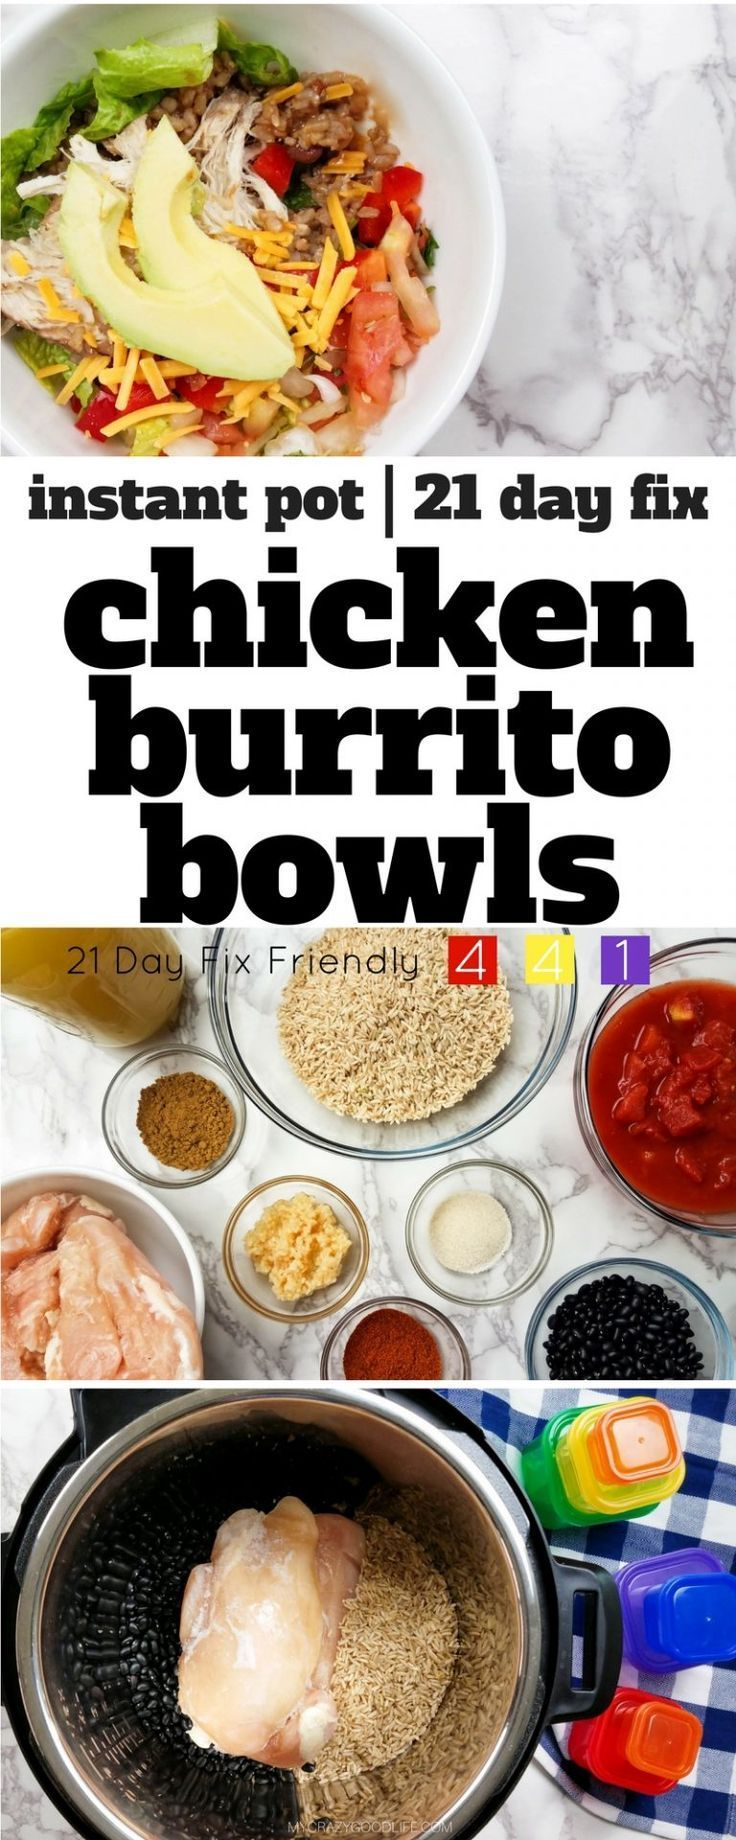 This 21 day fix burrito bowl recipe is prefect for meal prep day this 21 day fix burrito bowl recipe is prefect for meal prep day cook this forumfinder Images